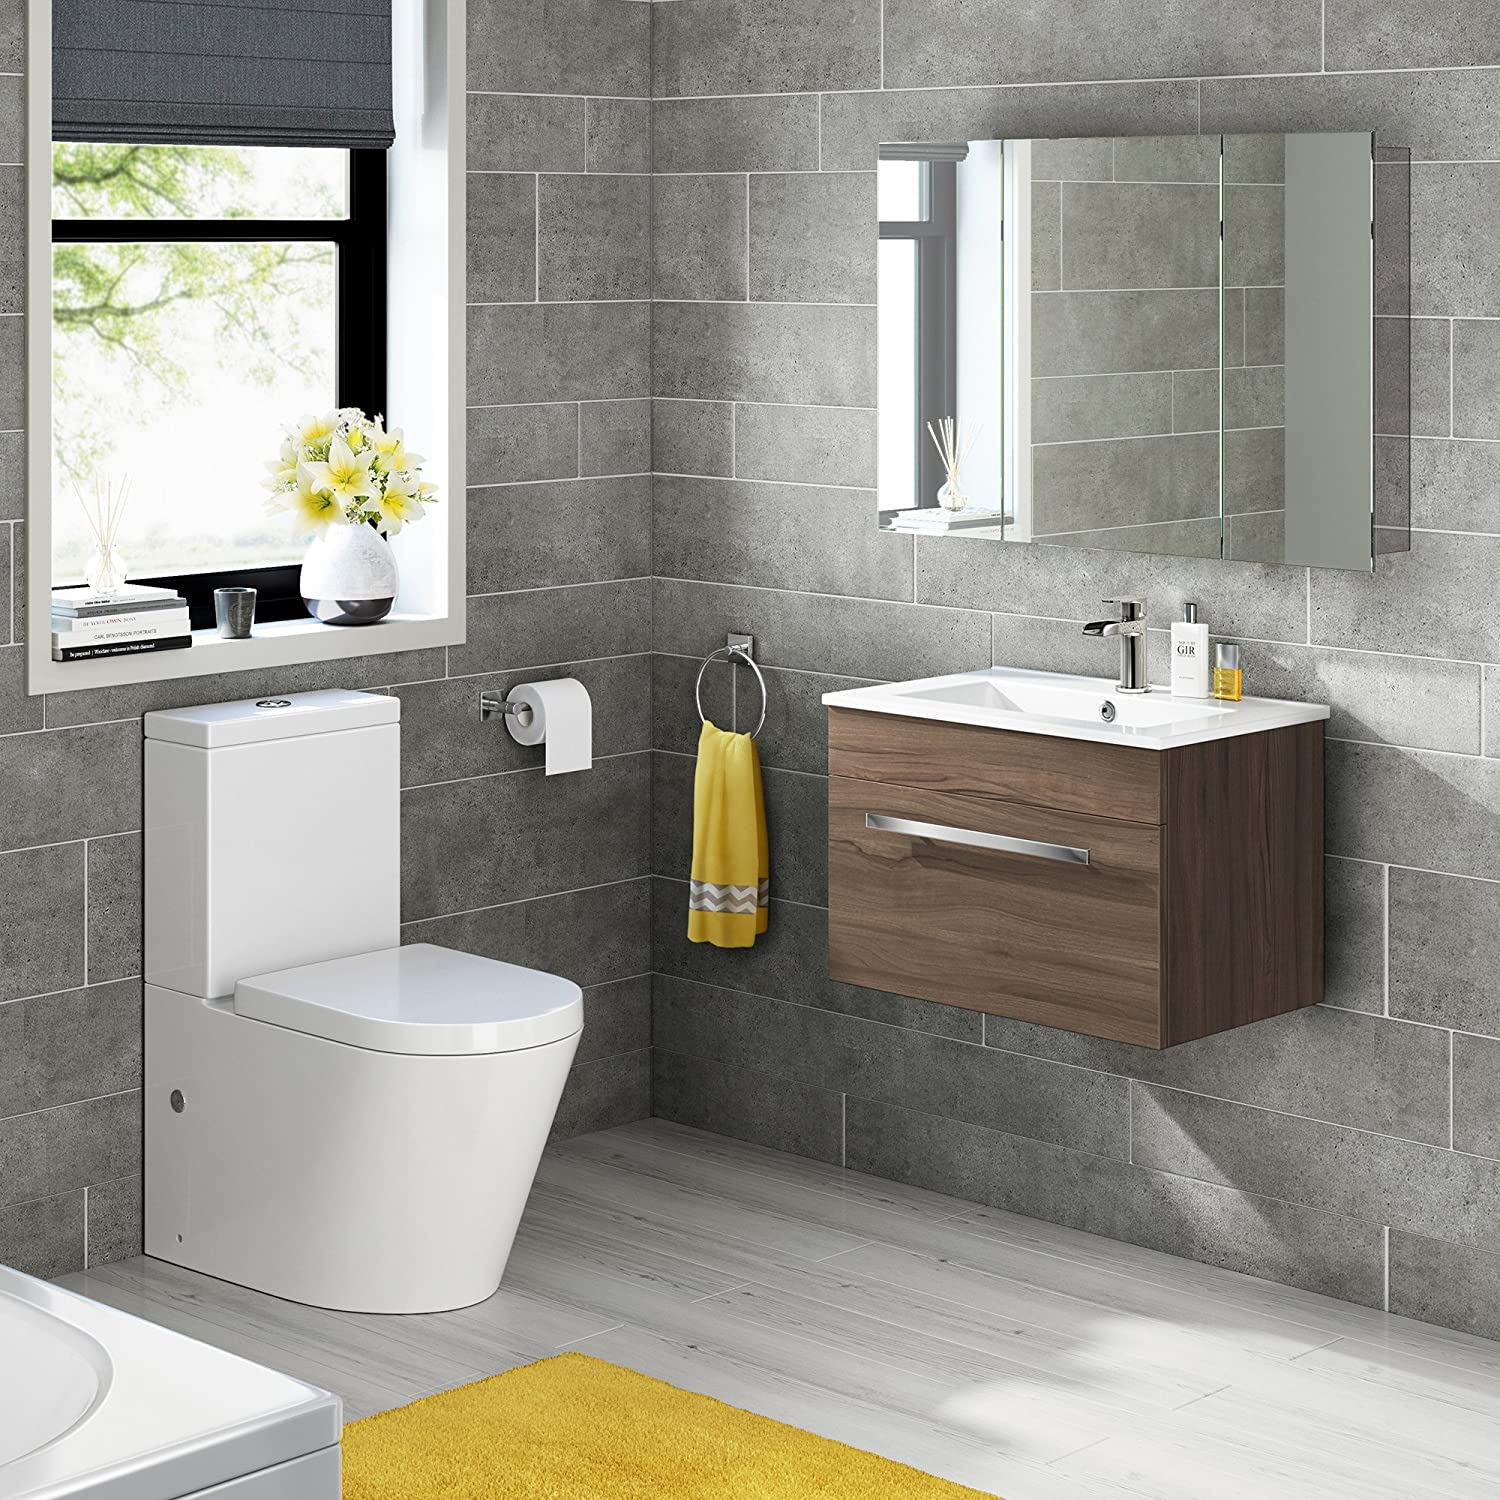 600 X 900 Stainless Steel Bathroom Mirror Cabinet Modern Triple Door Storage  Unit: IBathUK: Amazon.co.uk: DIY U0026 Tools